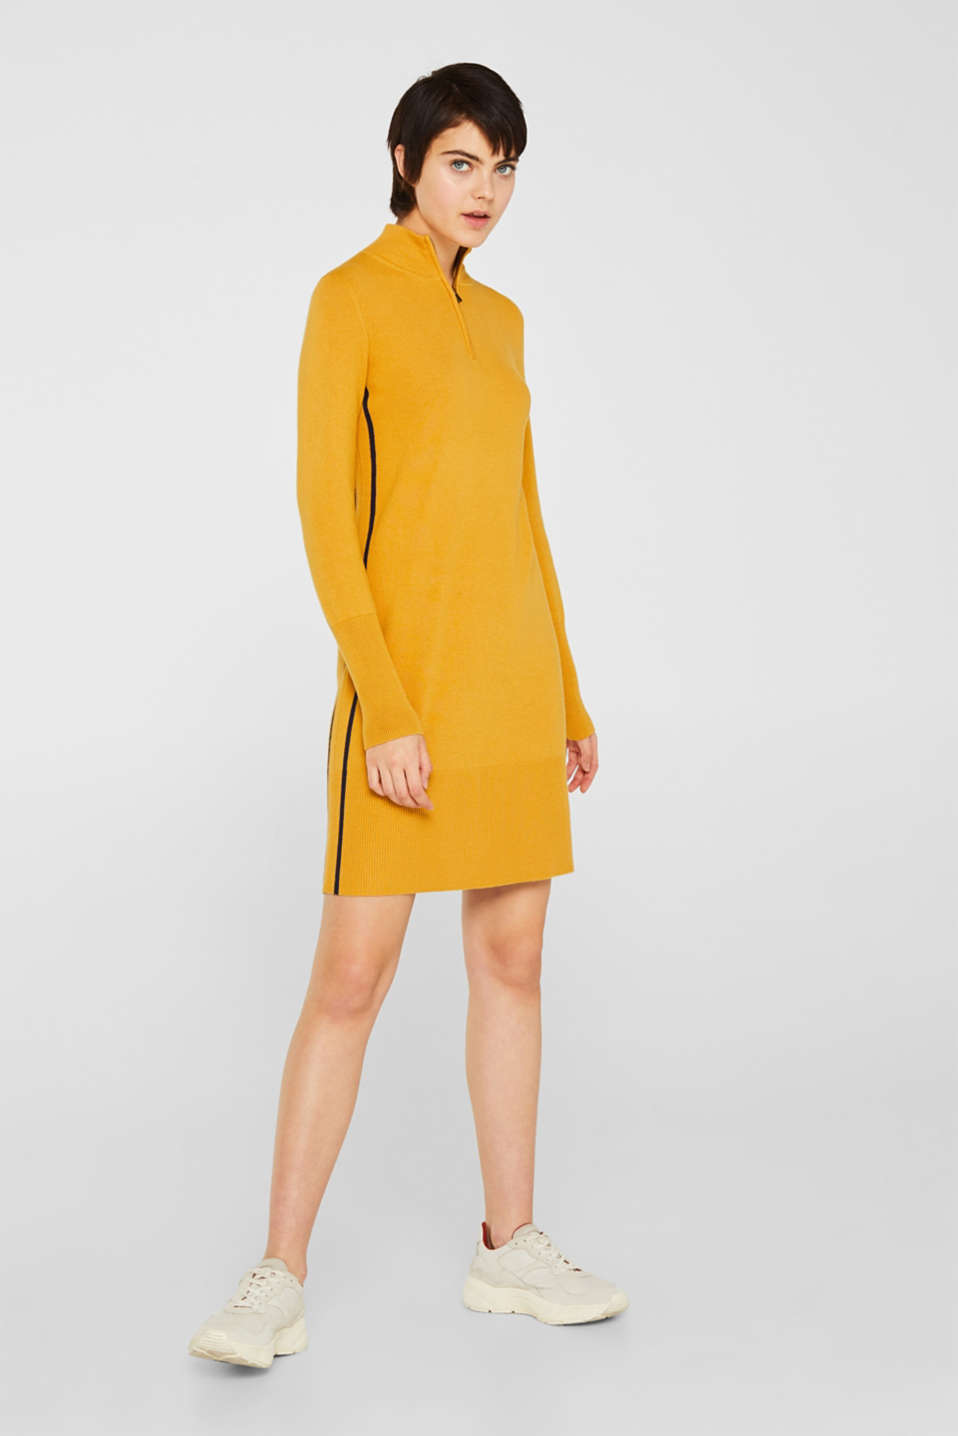 Knit dress with a zip-up band collar, HONEY YELLOW, detail image number 1